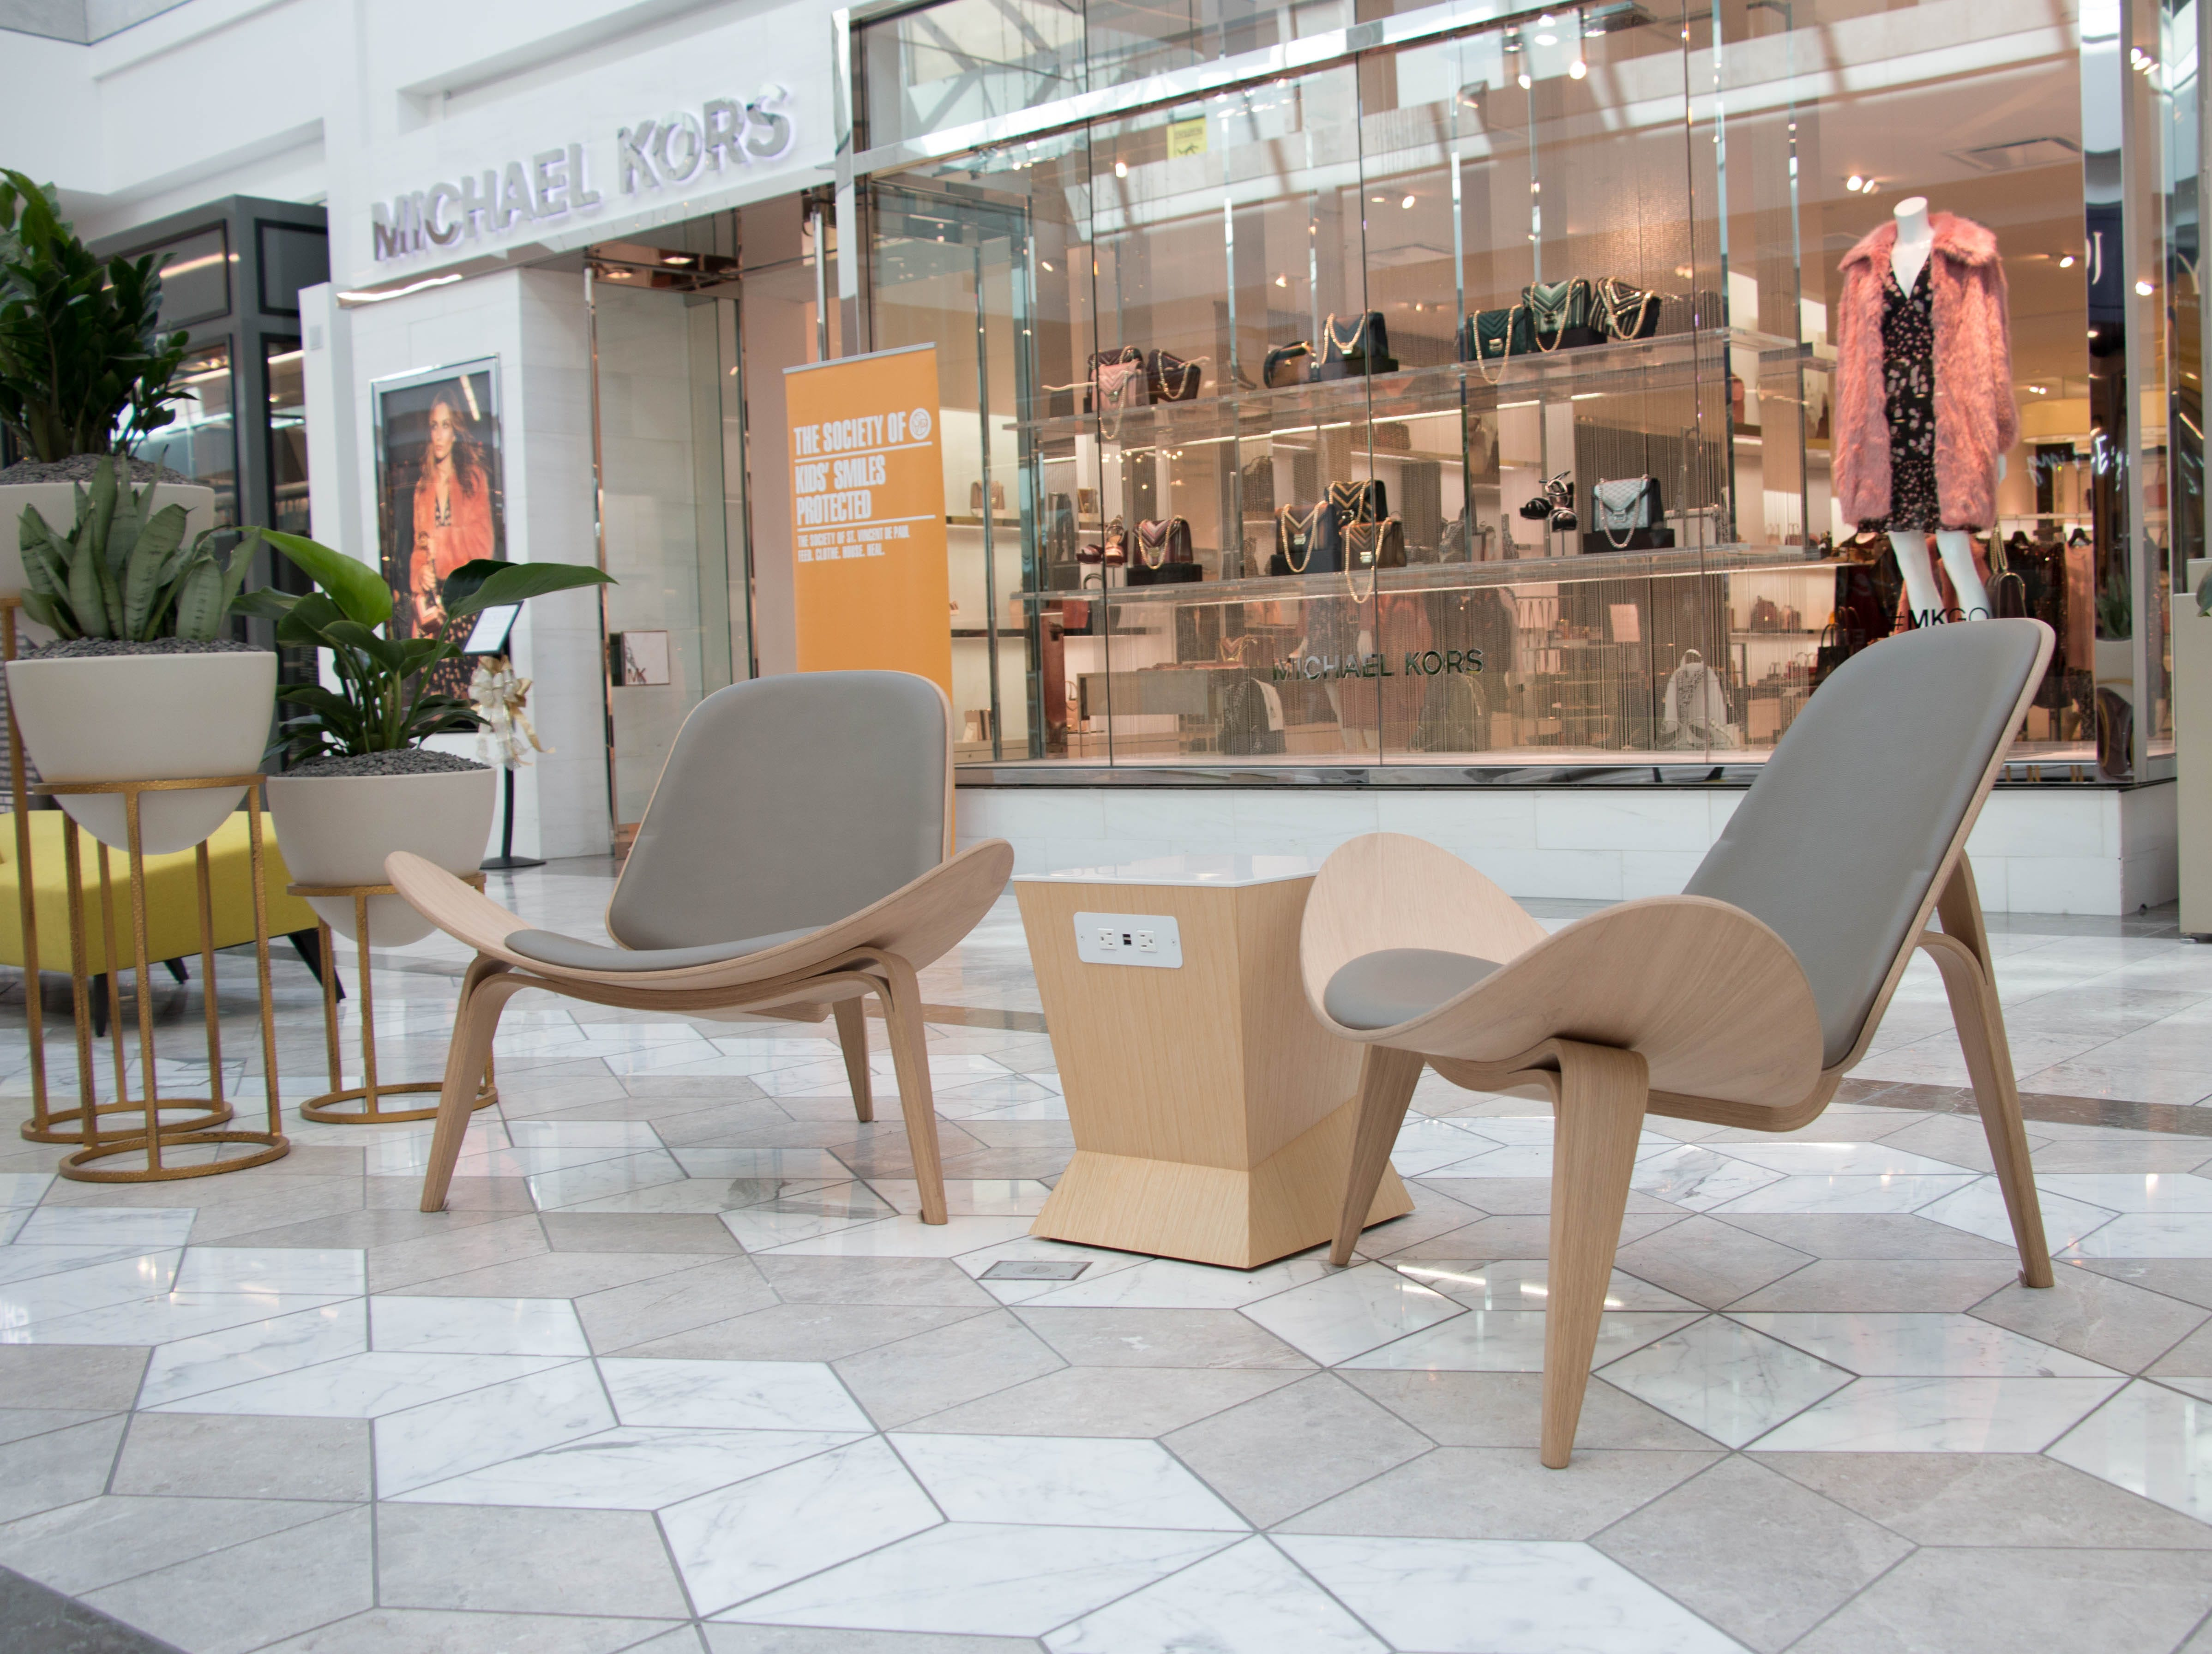 Upgrades to Scottsdale Fashion Square include a number of seating areas with power outlets.